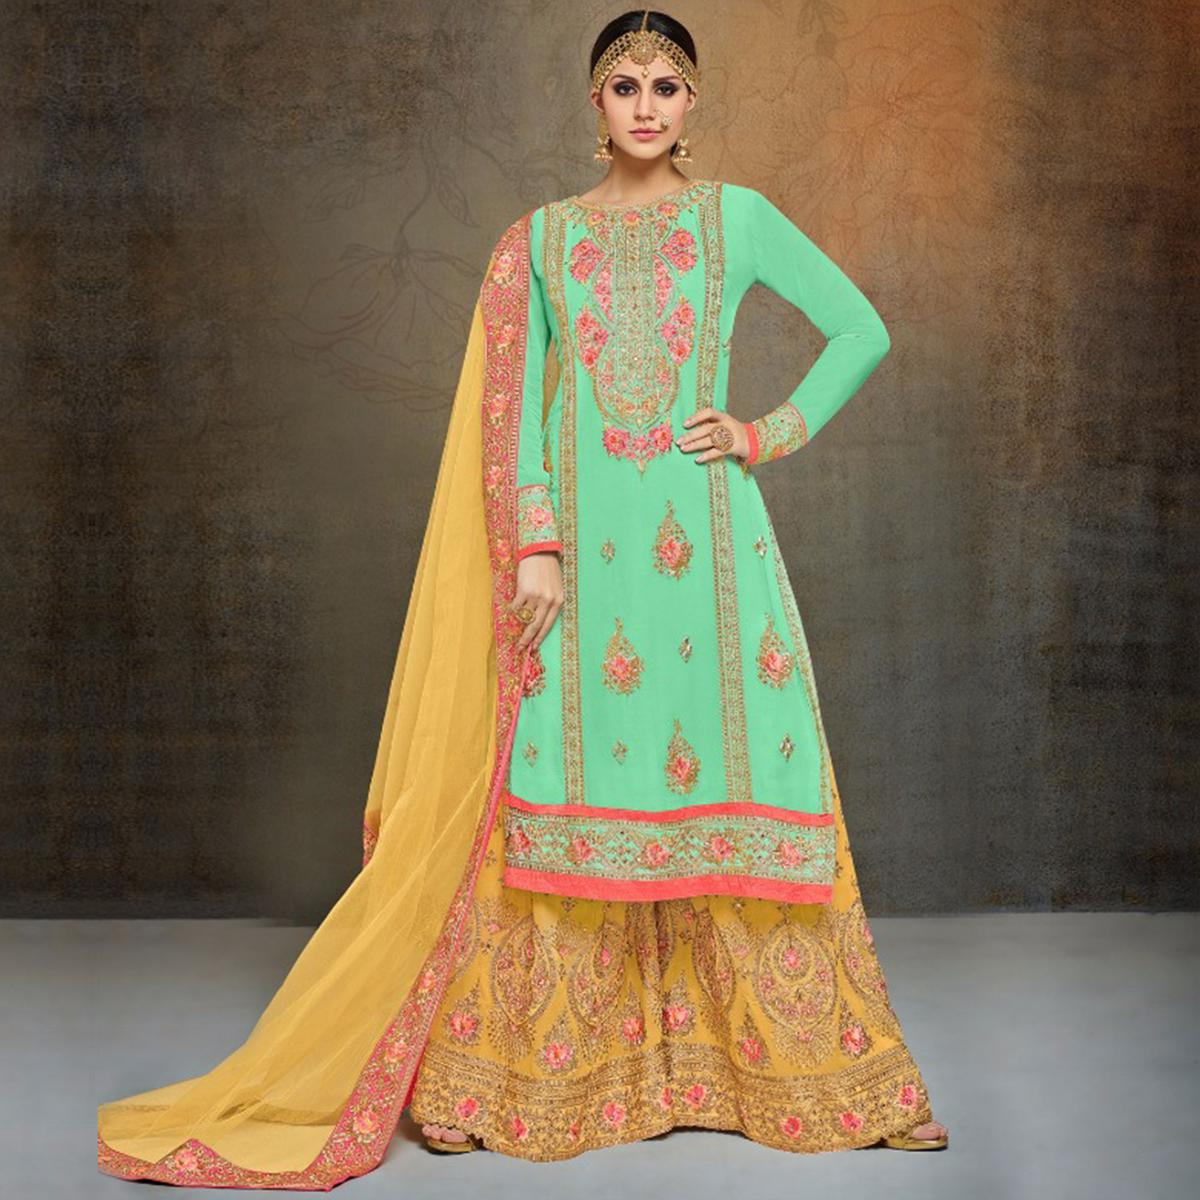 b2211eb4948 Buy Elegant Aqua Green-Yellow Colored Partywear Heavy Embroidered Georgette  Palazzo Suit for womens online India